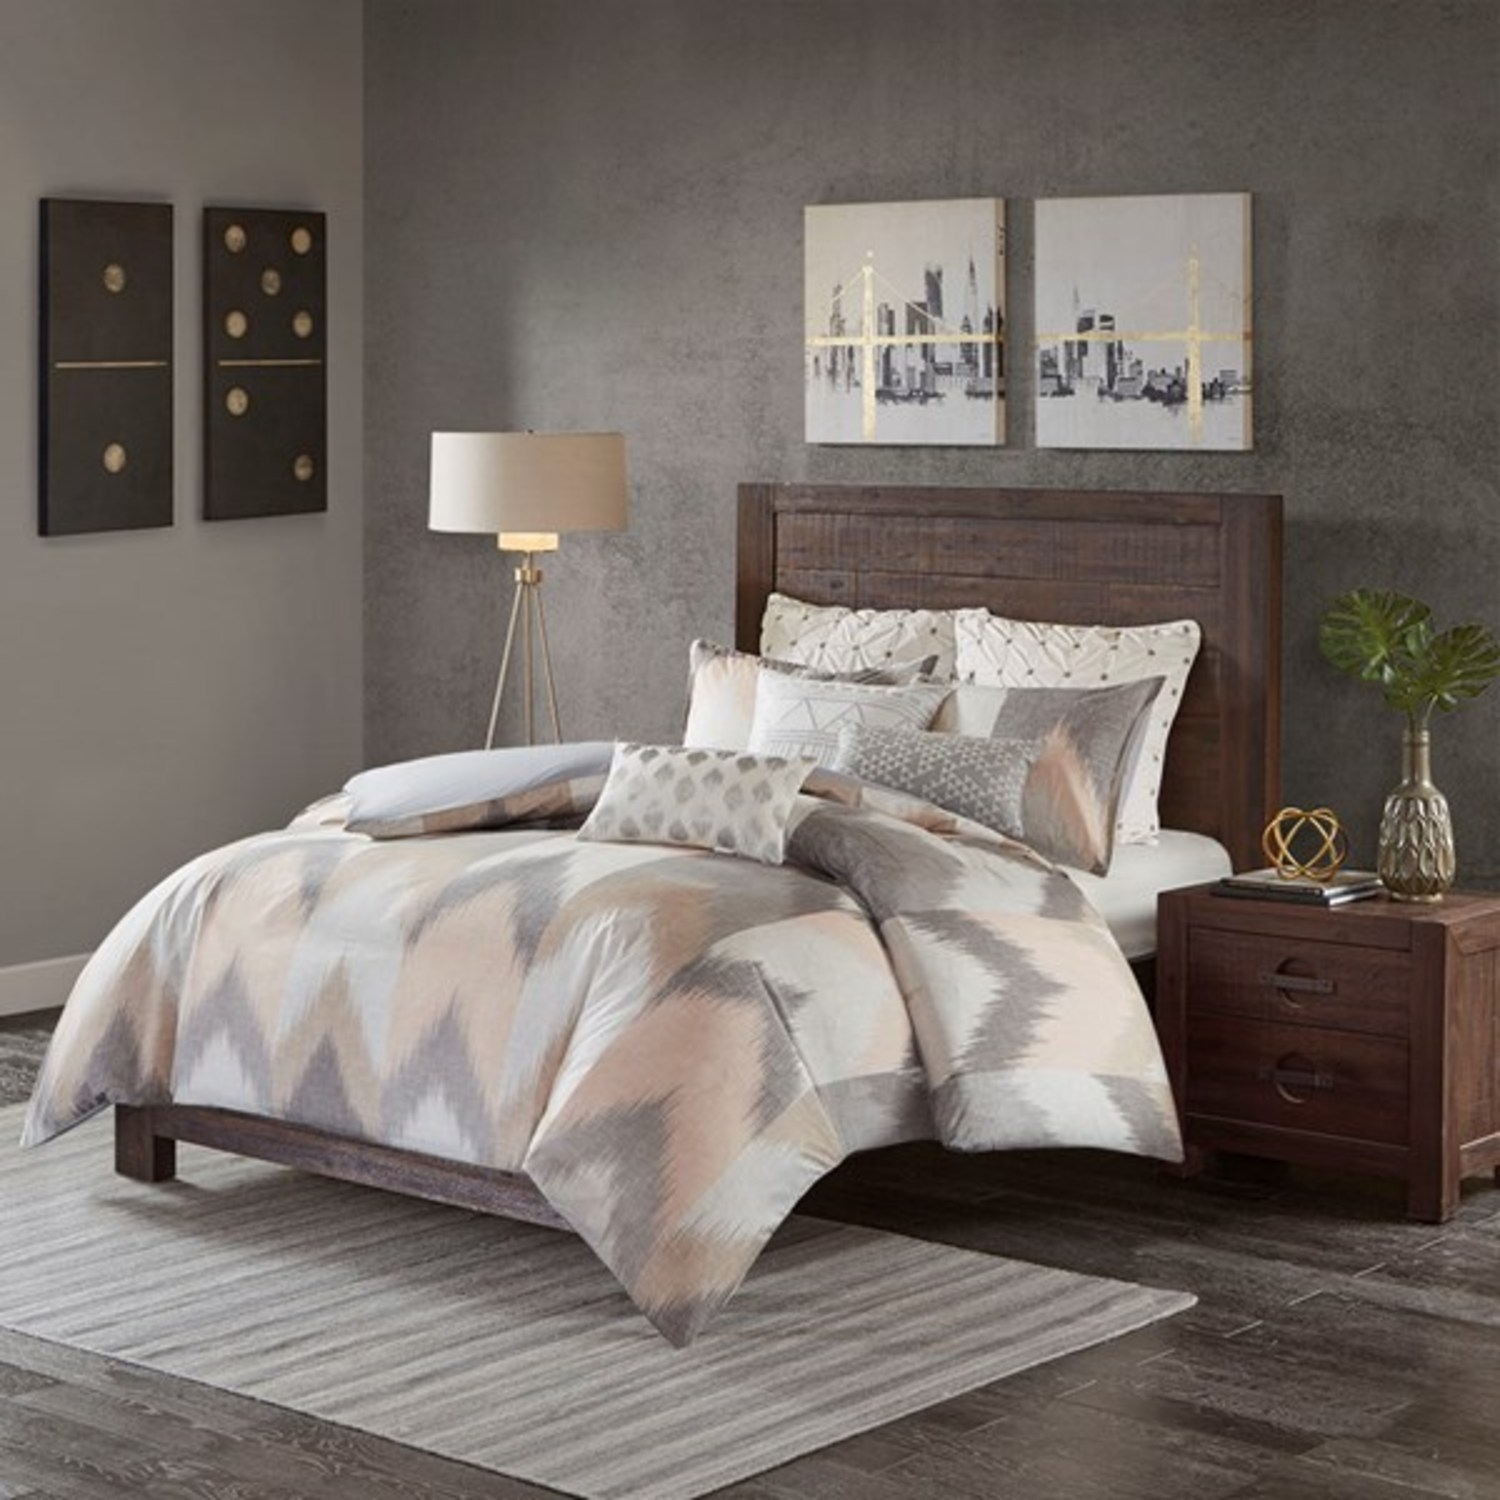 Alpine Blush By Ink Amp Ivy Bedding Beddingsuperstore Com